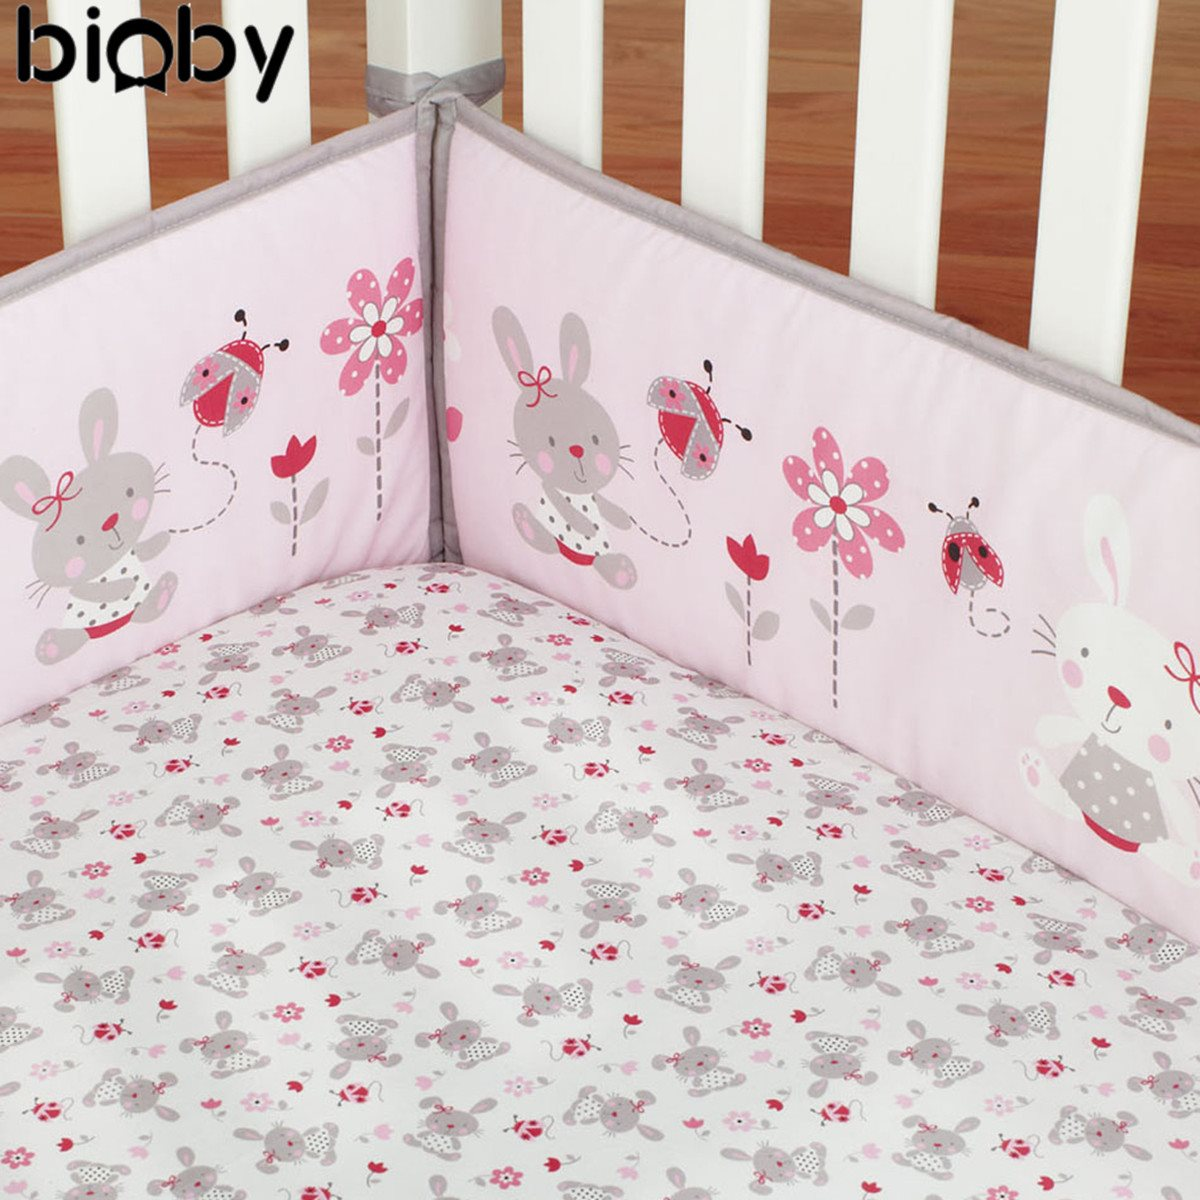 Crib protector for babies - 4pcs Set Rabbit Baby Infant Cot Crib Bumper Cotton Soft Safety Protector Toddler Nursery Cushion Baby Protect Bedding Set